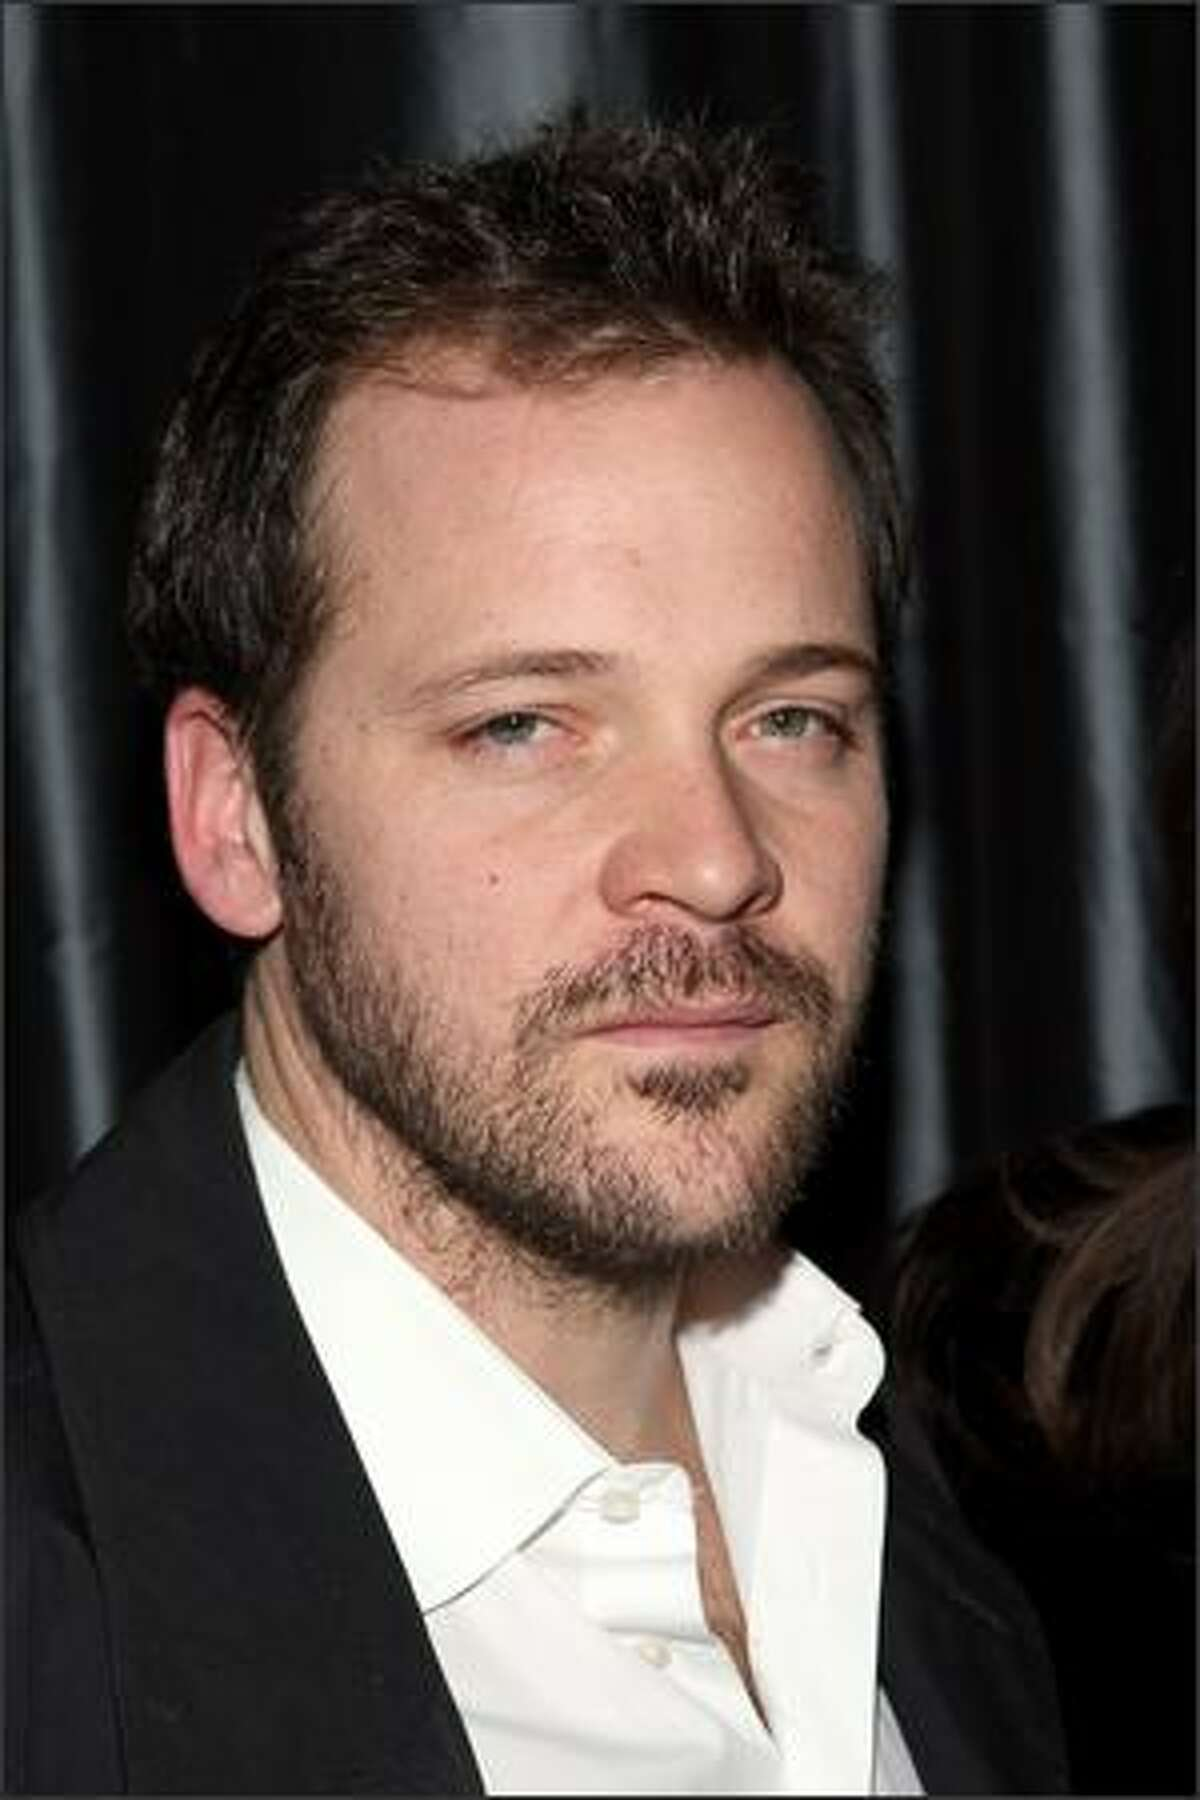 Actor Peter Sarsgaard attends the 2007 New York Film Critic's Circle Awards at Spotlight in New York City.